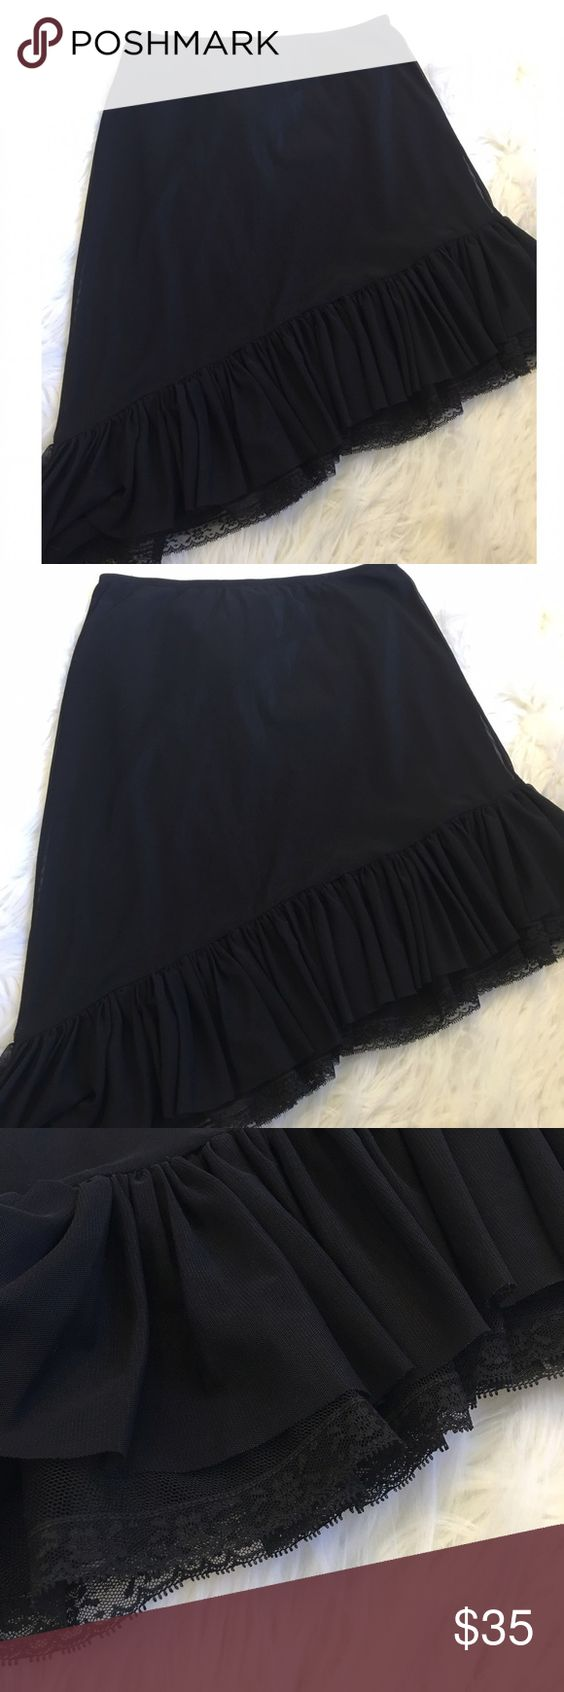 "✨BETSY JOHNSON ASYMETRICAL SKIRT✨ Betsy Johnson black ASYMETRICAL skirt. Elastic waist. Ruffle lace detail along bottom. Fits size xsmall to small. Laying flat waist measures 12"". ( but elastic stretches to 27"").  From top of waist to bottom of longest point of skirt measures 24"". Shortest point is 16"". Excellent condition Betsey Johnson Skirts Asymmetrical"